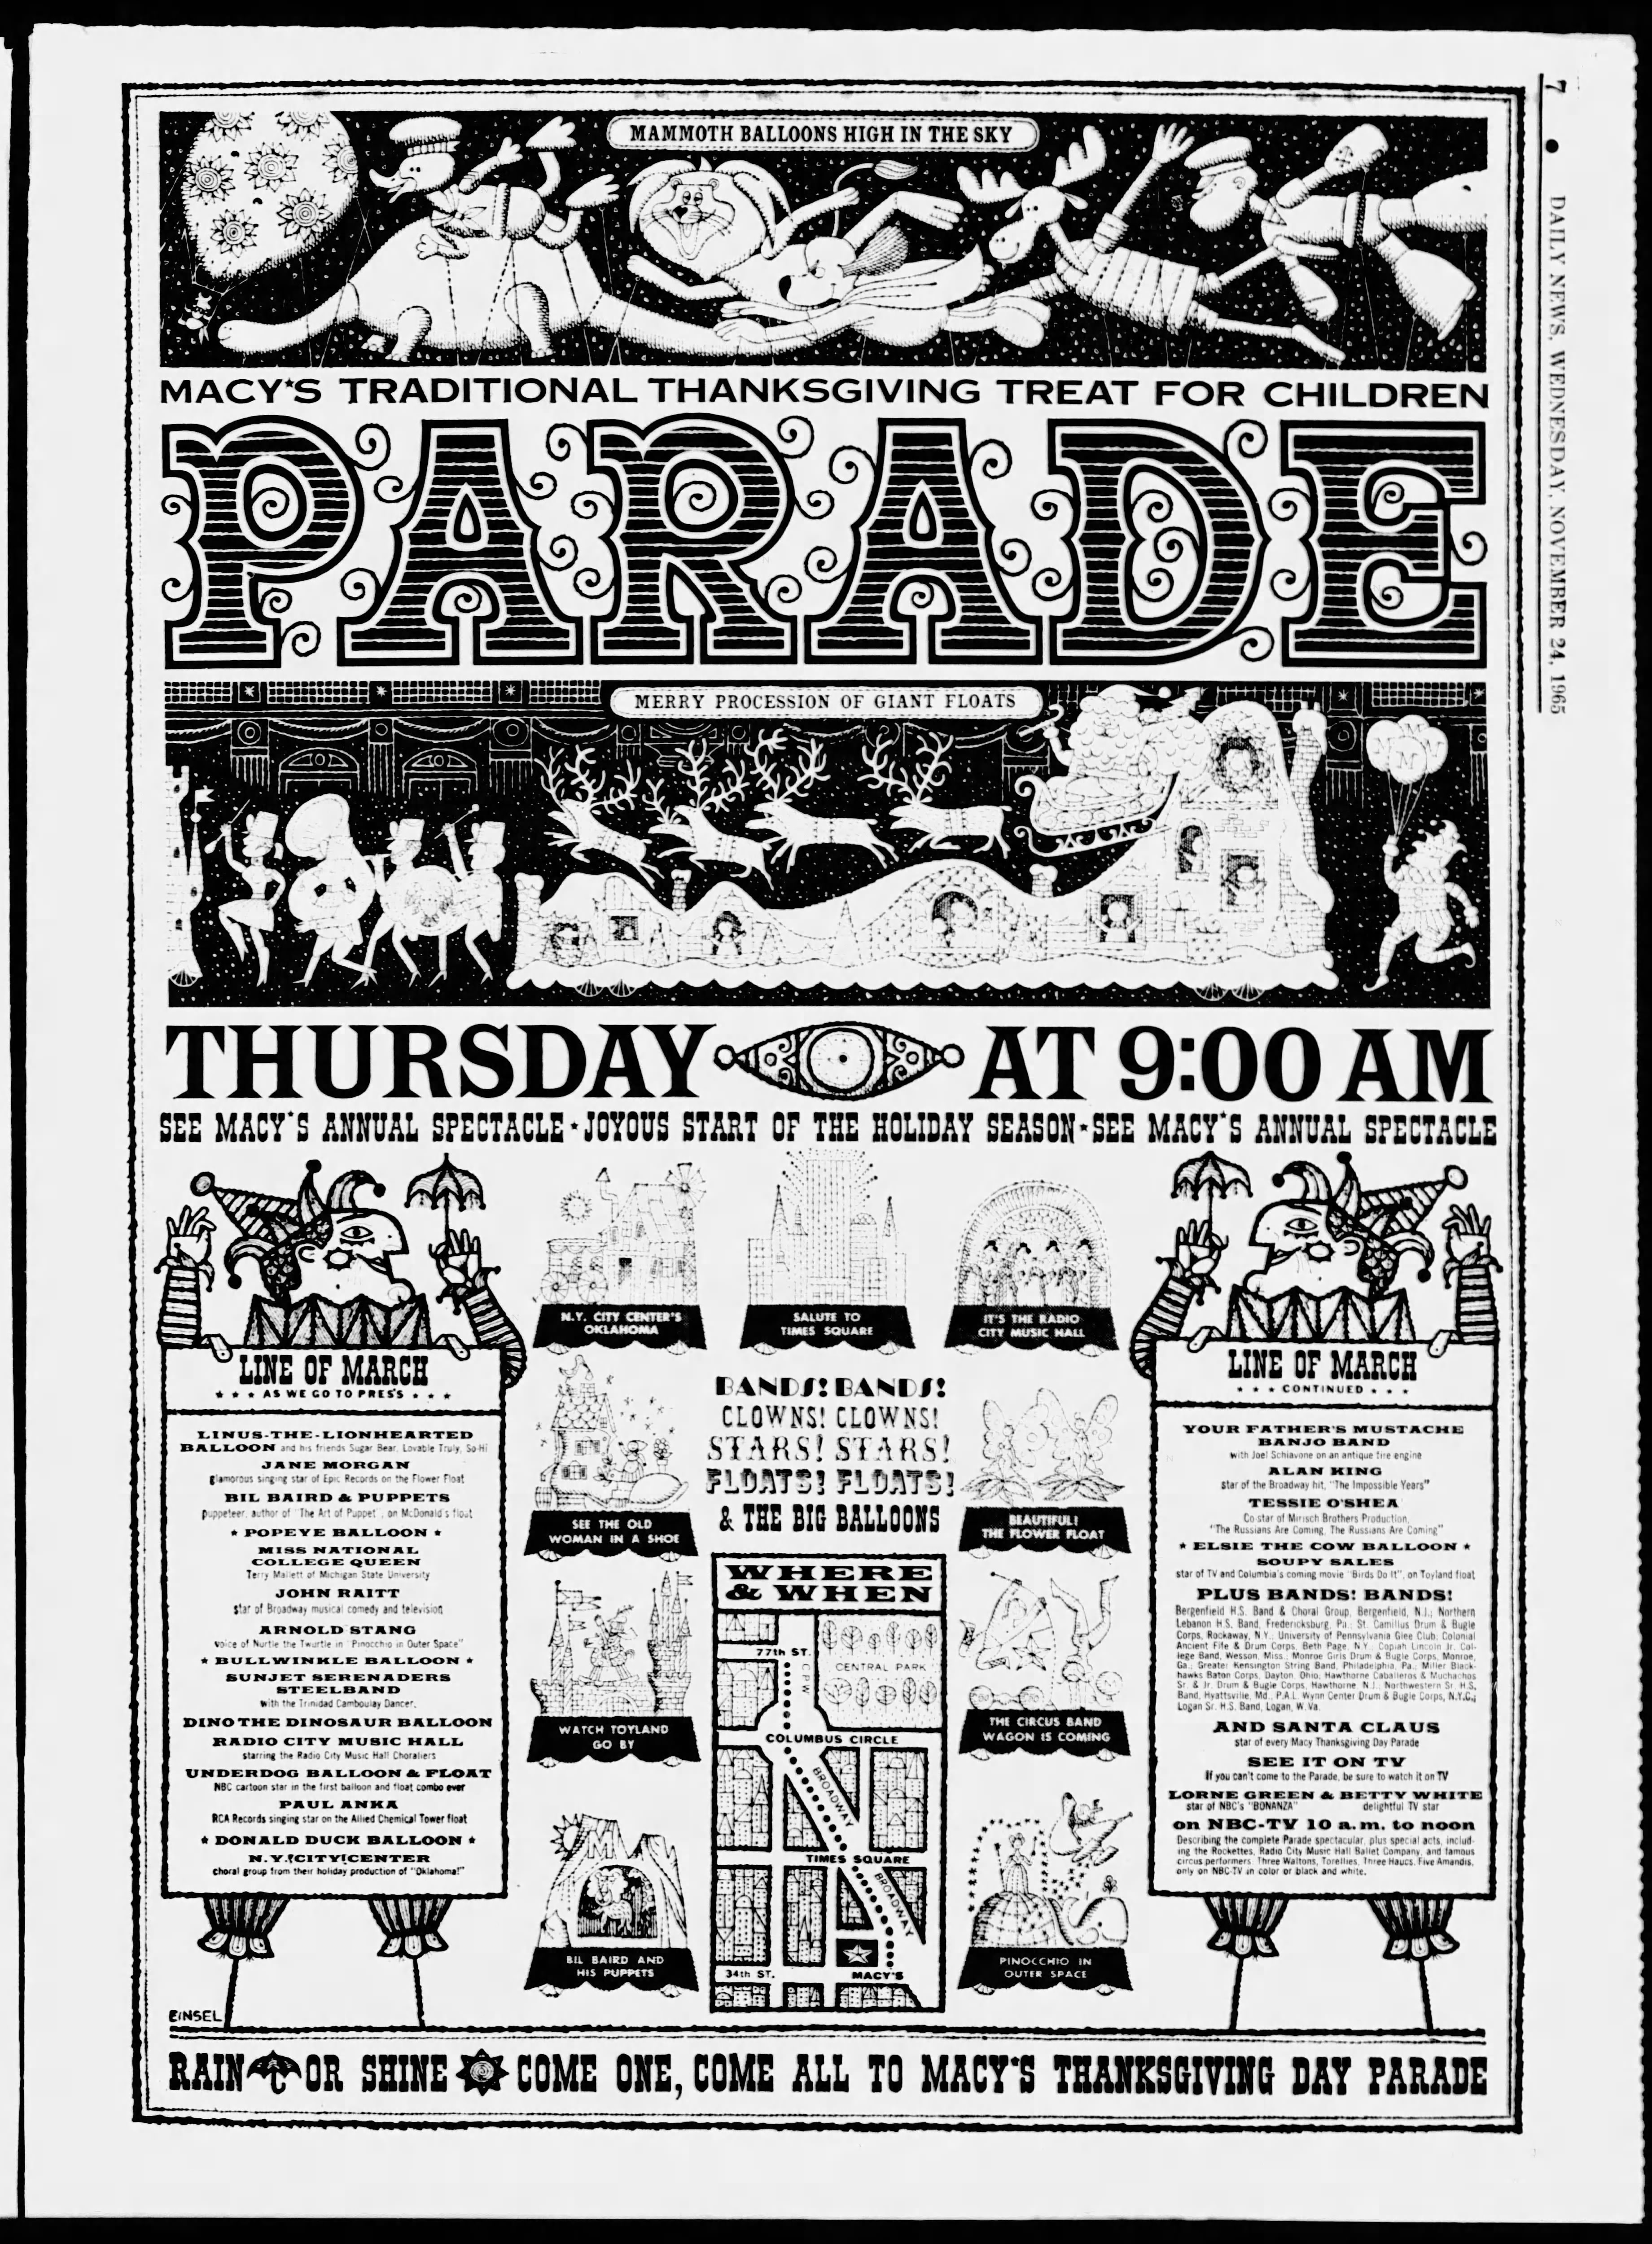 The 39th Annual Macy's Thanksgiving Day Parade